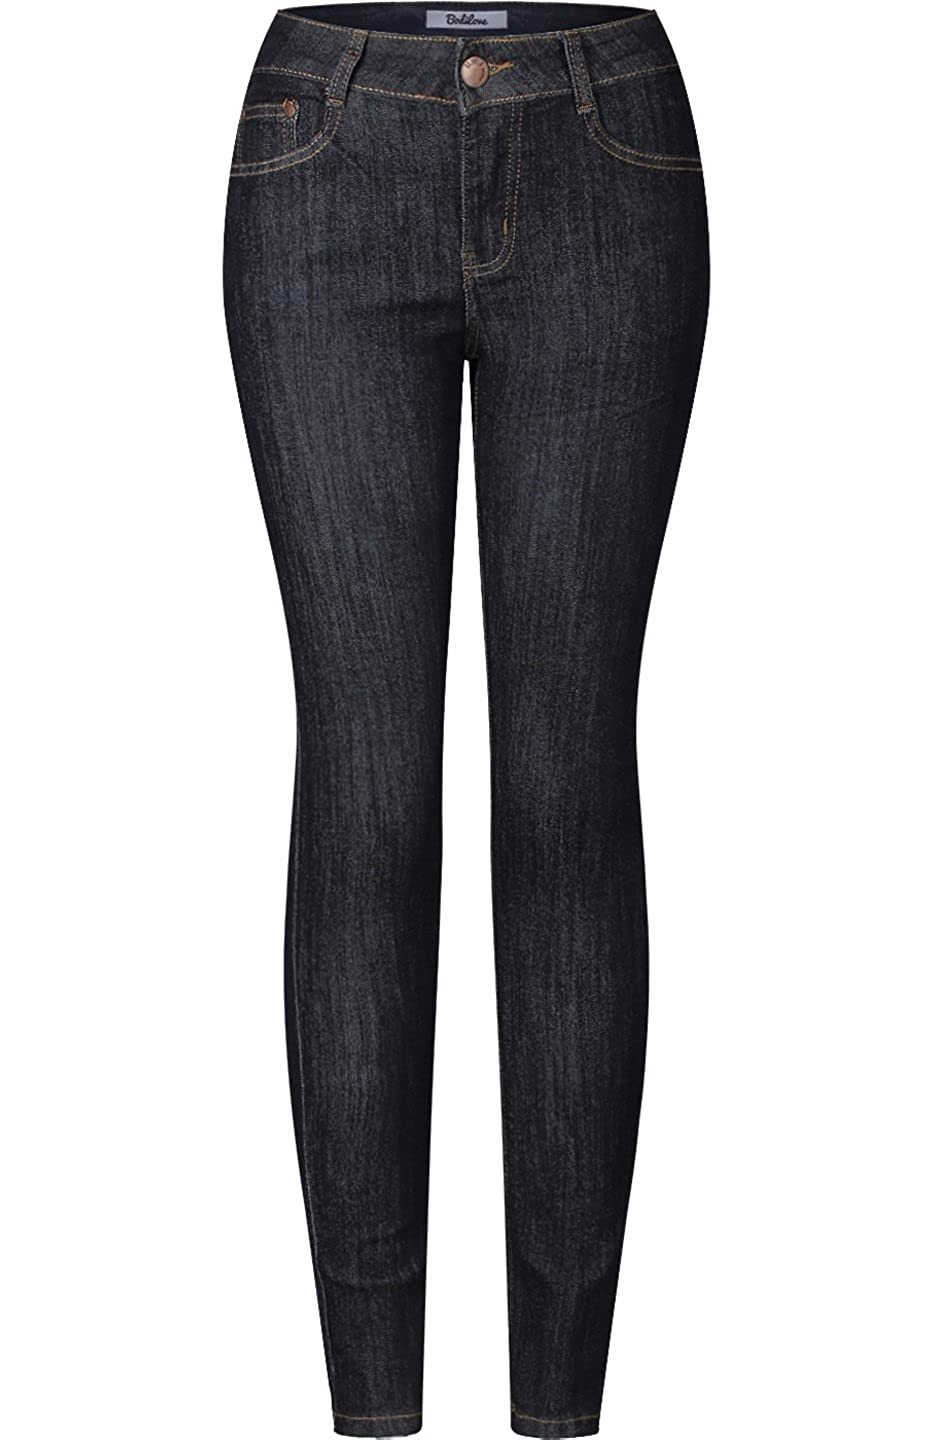 90780289749 Top 10 wholesale Long Super Skinny Jeans - Chinabrands.com